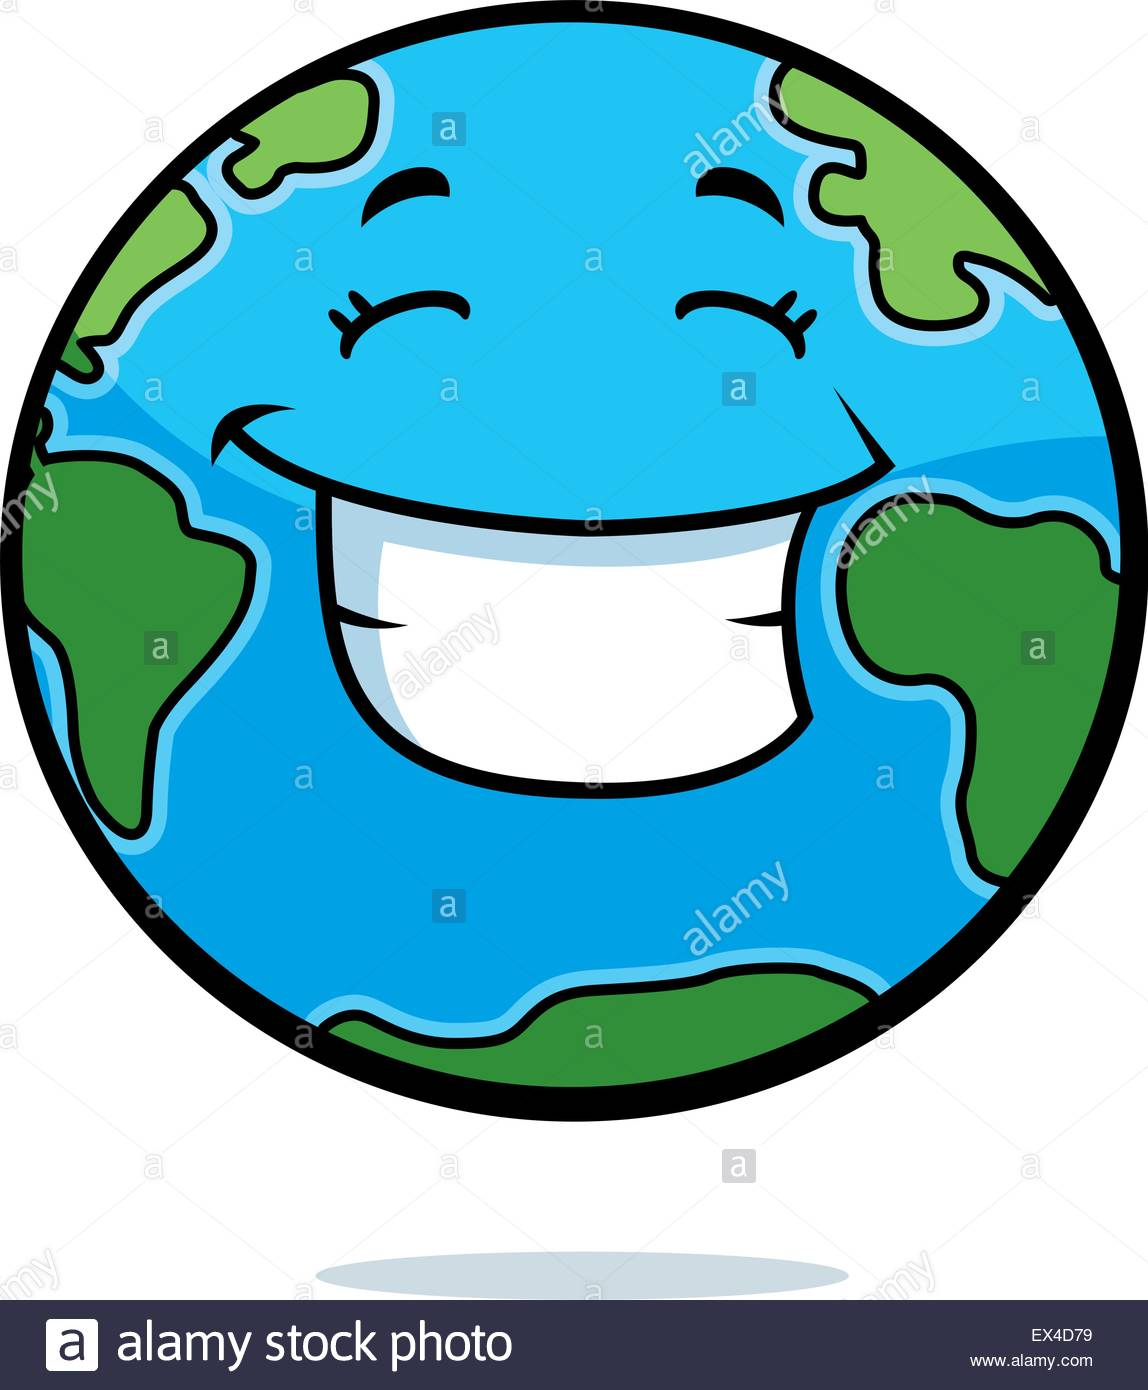 1148x1390 Planet Earth Clipart Happy Earth